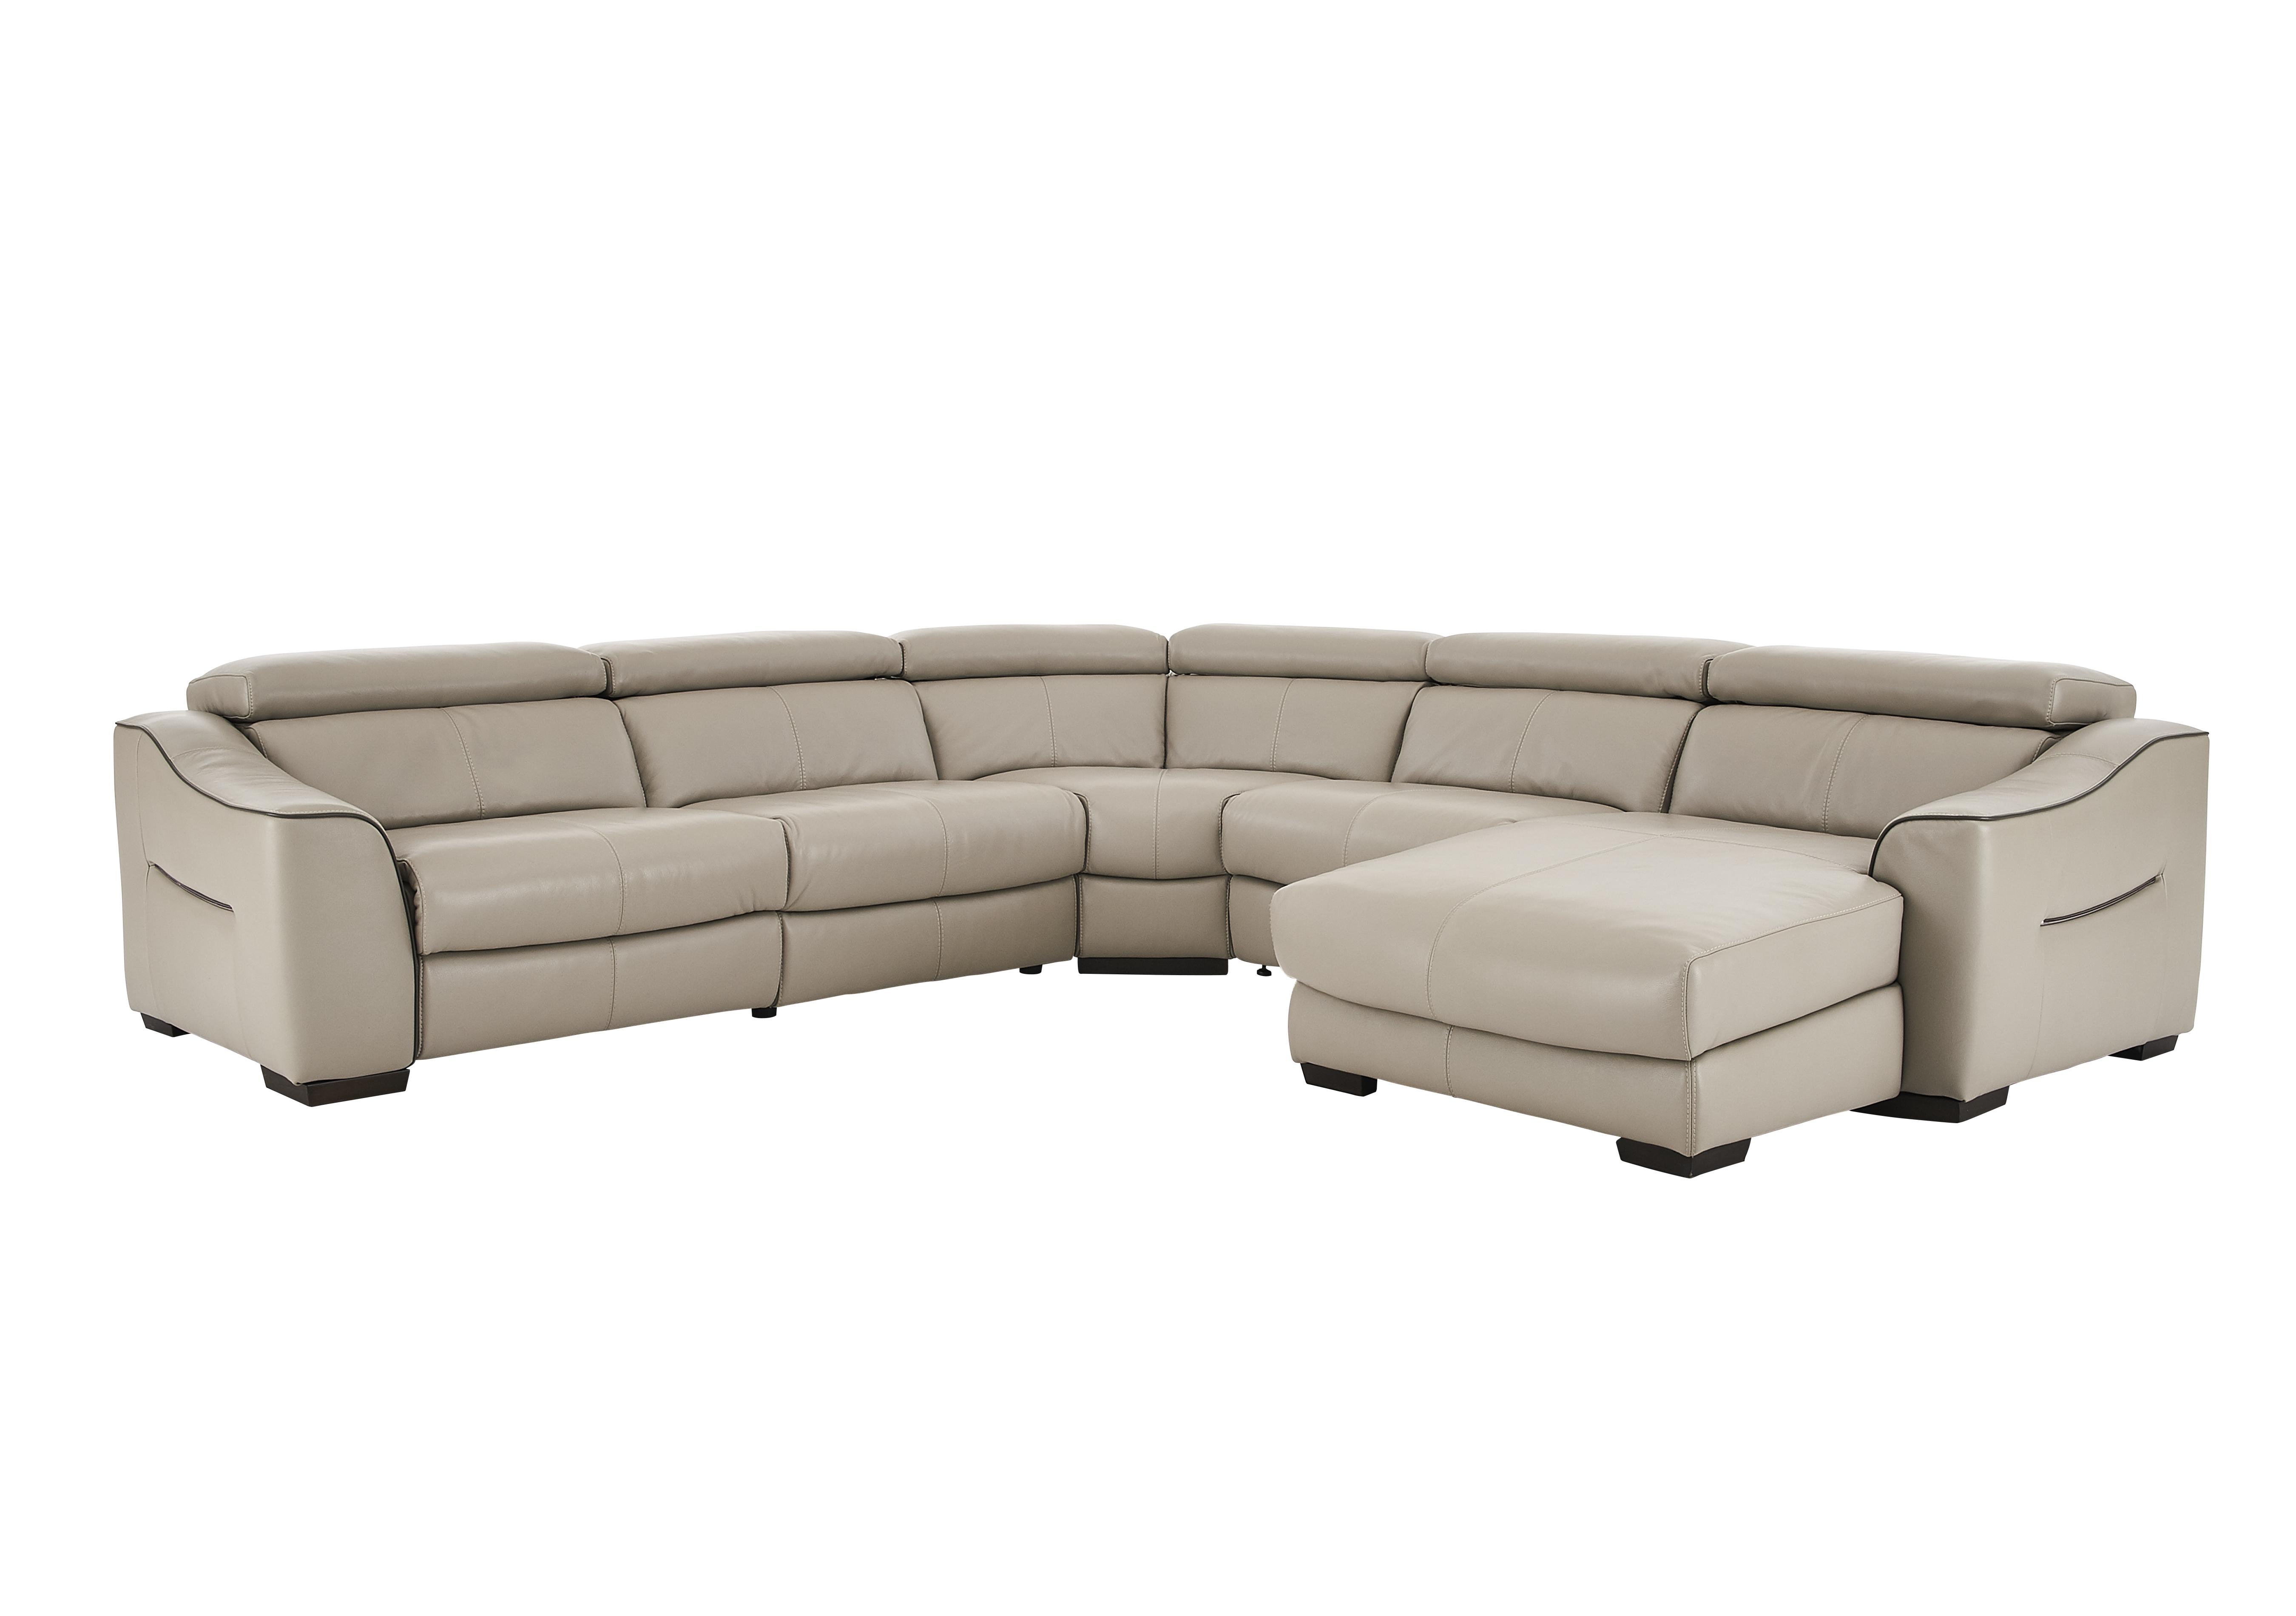 violino leather sofa stockists red literary internship sofas in stock uk brokeasshome